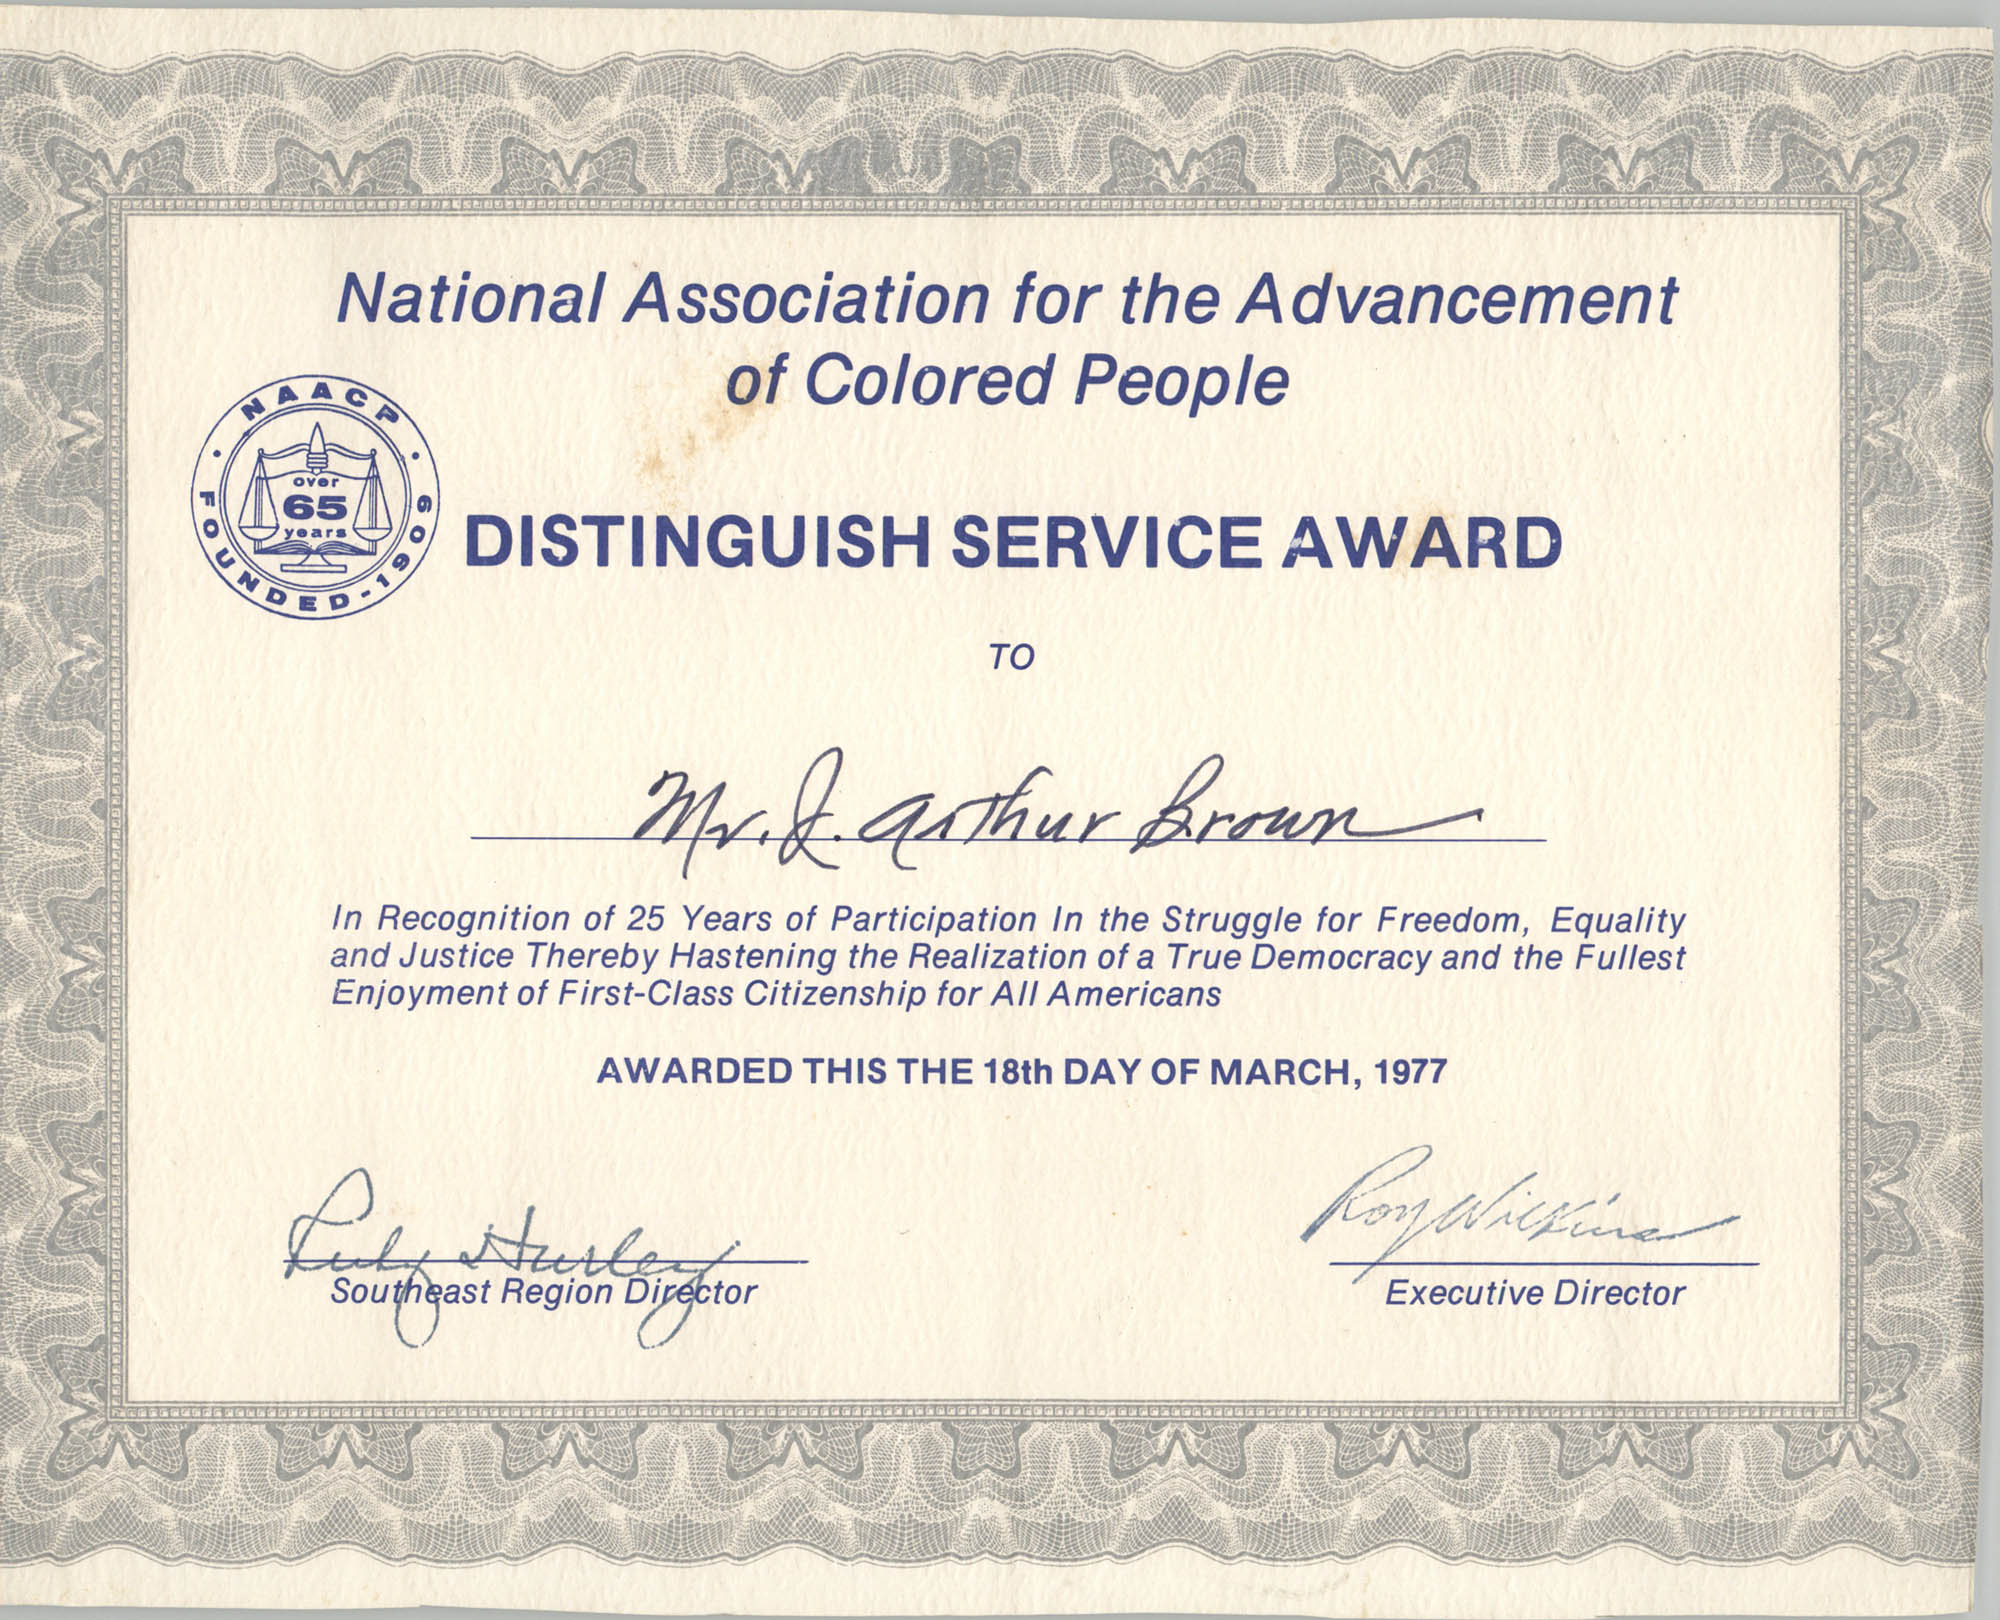 NAACP Distinguished Service Award for J. Arthur Brown